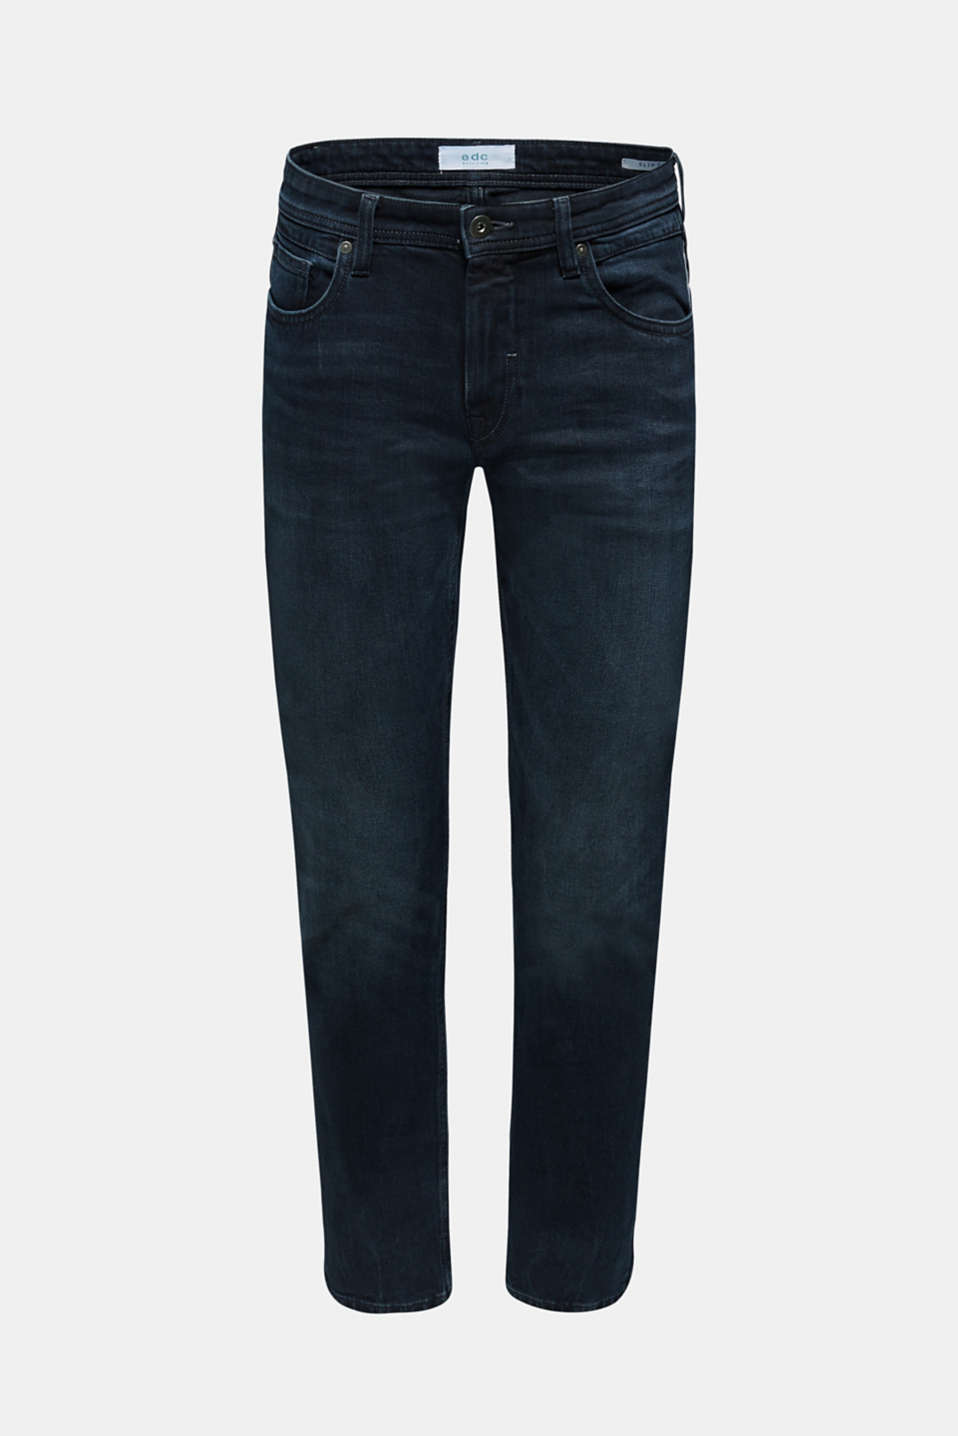 Pants denim Slim fit, BLUE DARK WASH, detail image number 6